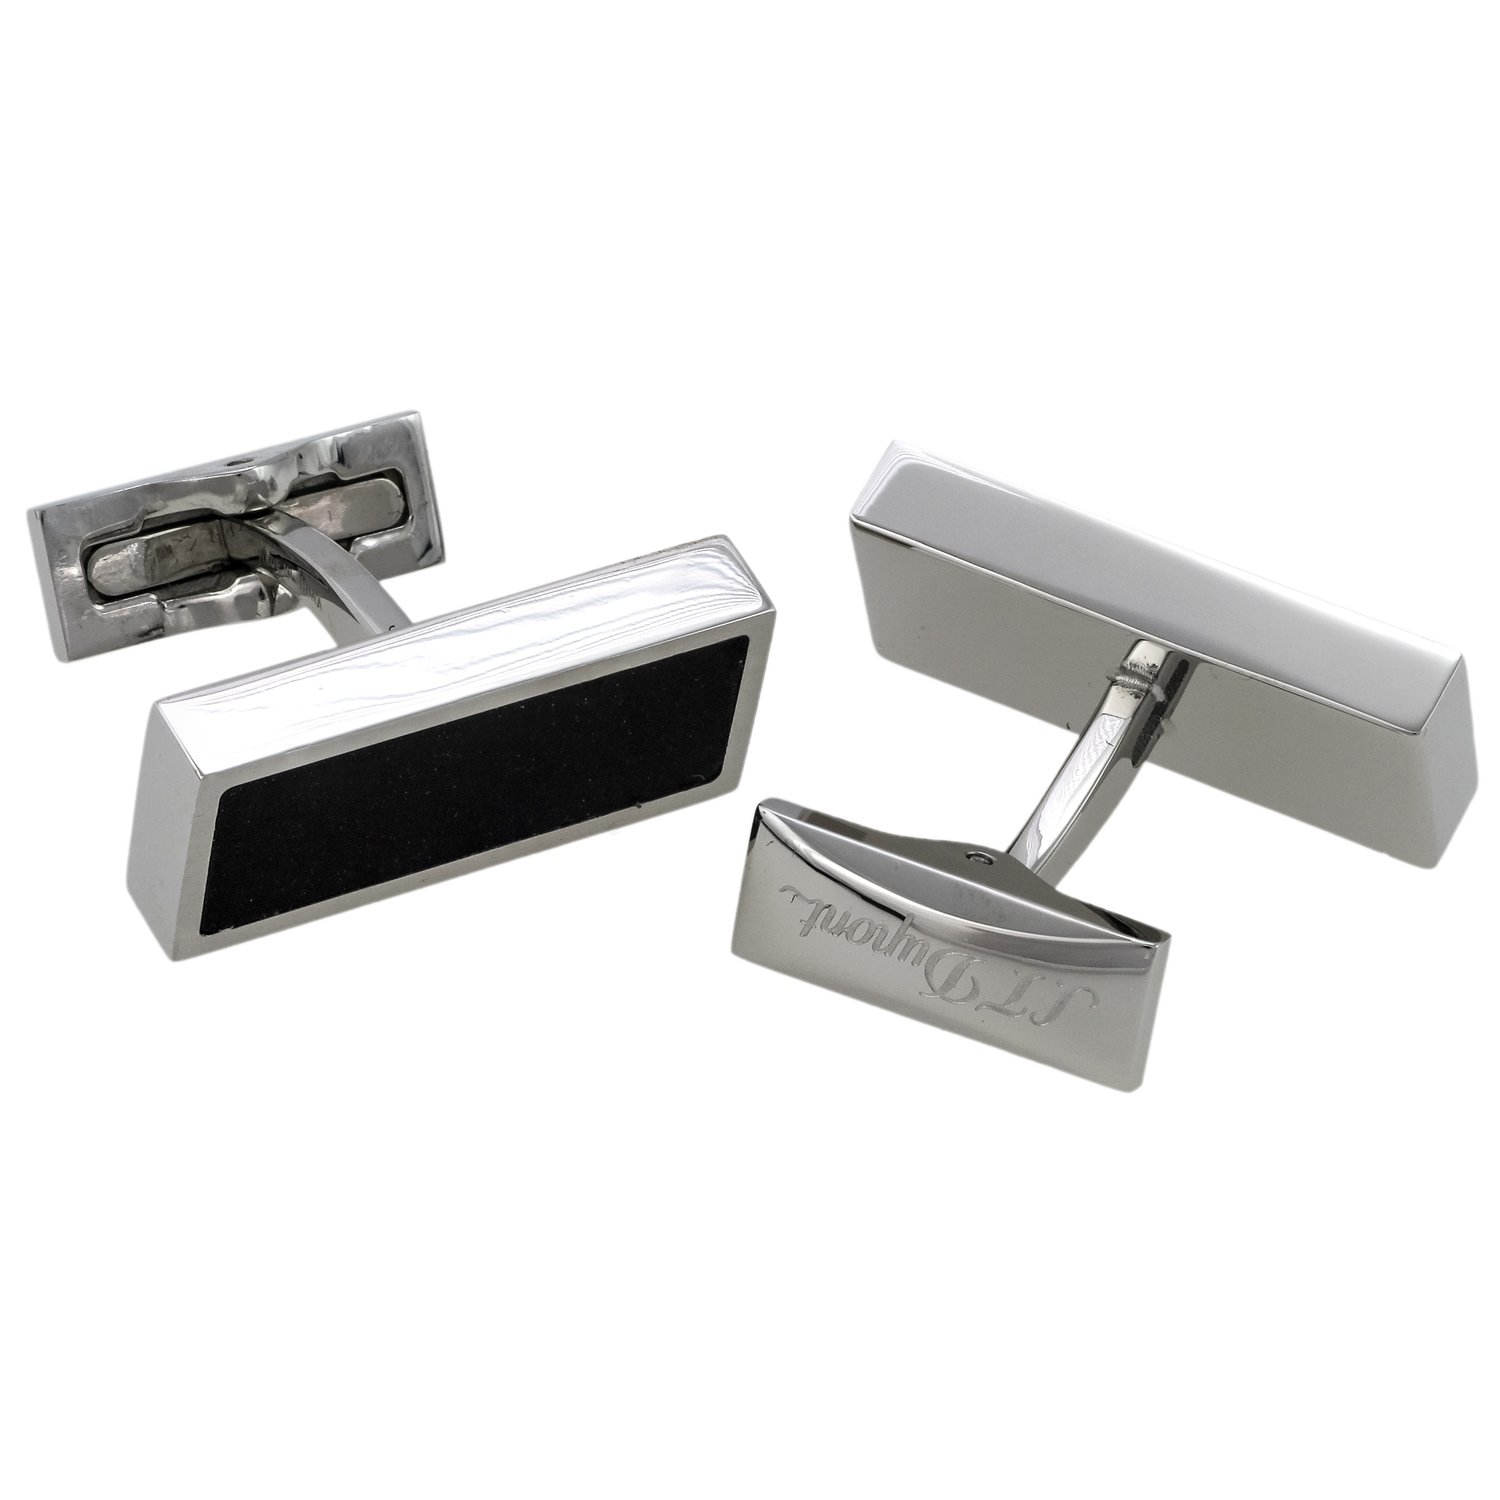 Boutons Defi Stainless Steel and Caoutchouc Cufflinks 005632